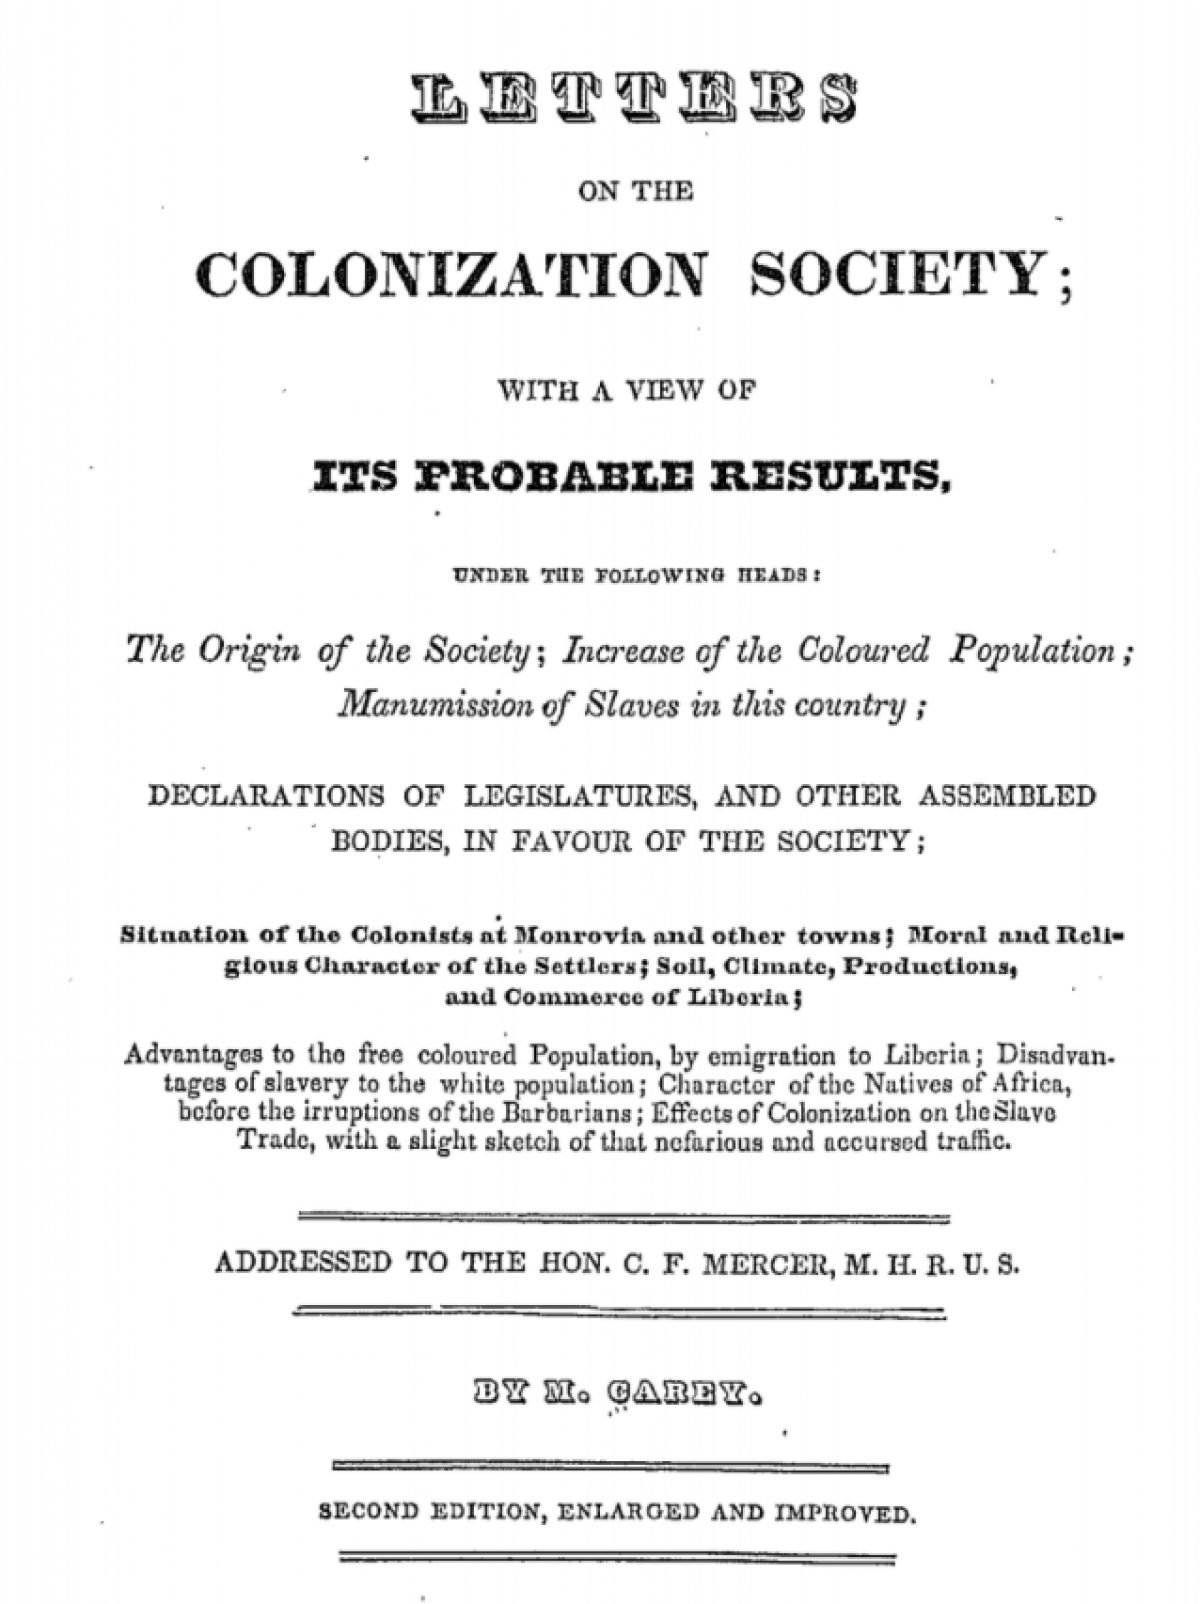 Carey Title Page